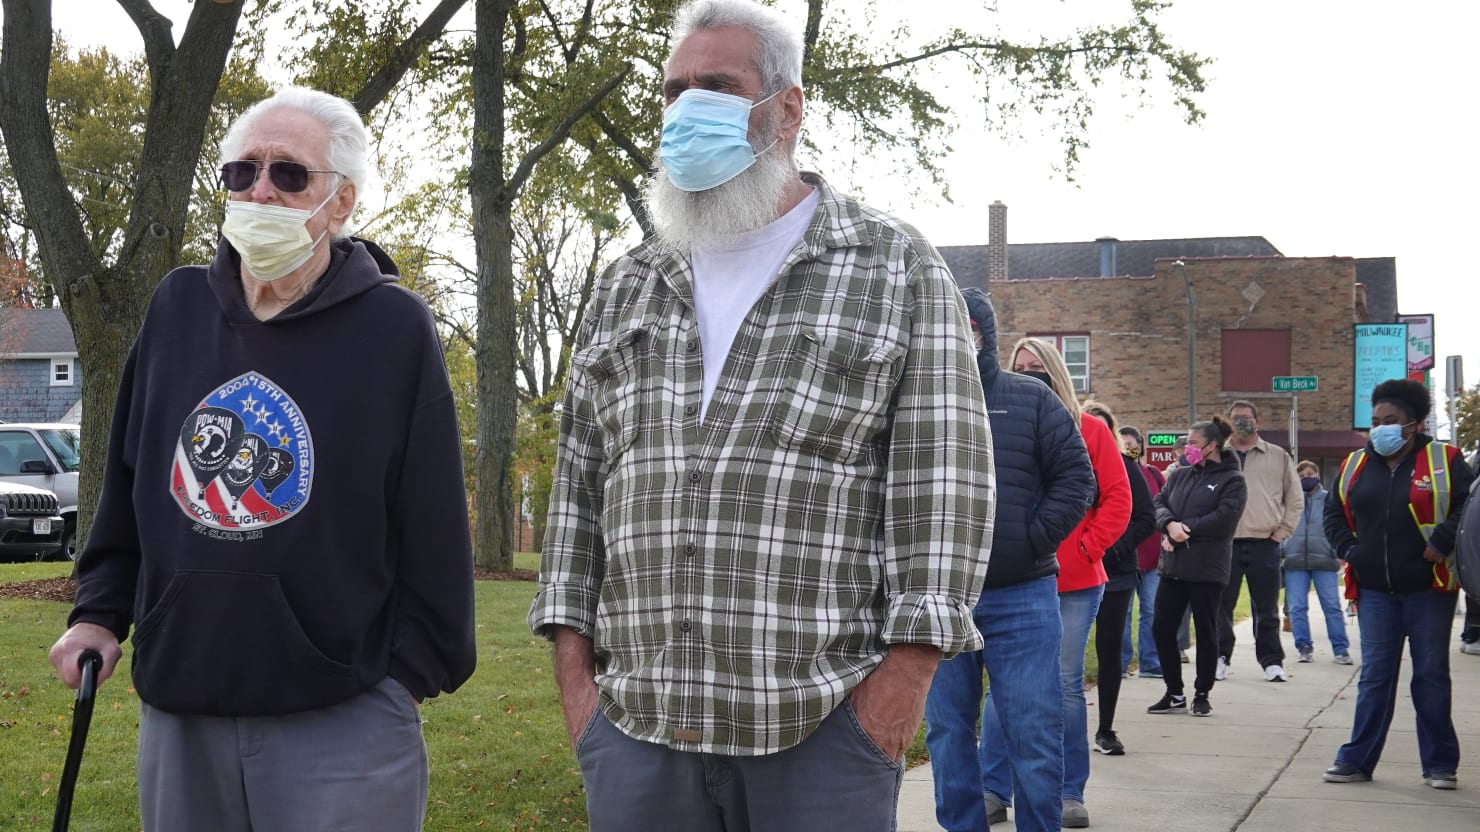 Coronavirus Is Surging in Wisconsin. People Are Early Voting in Force Anyway.